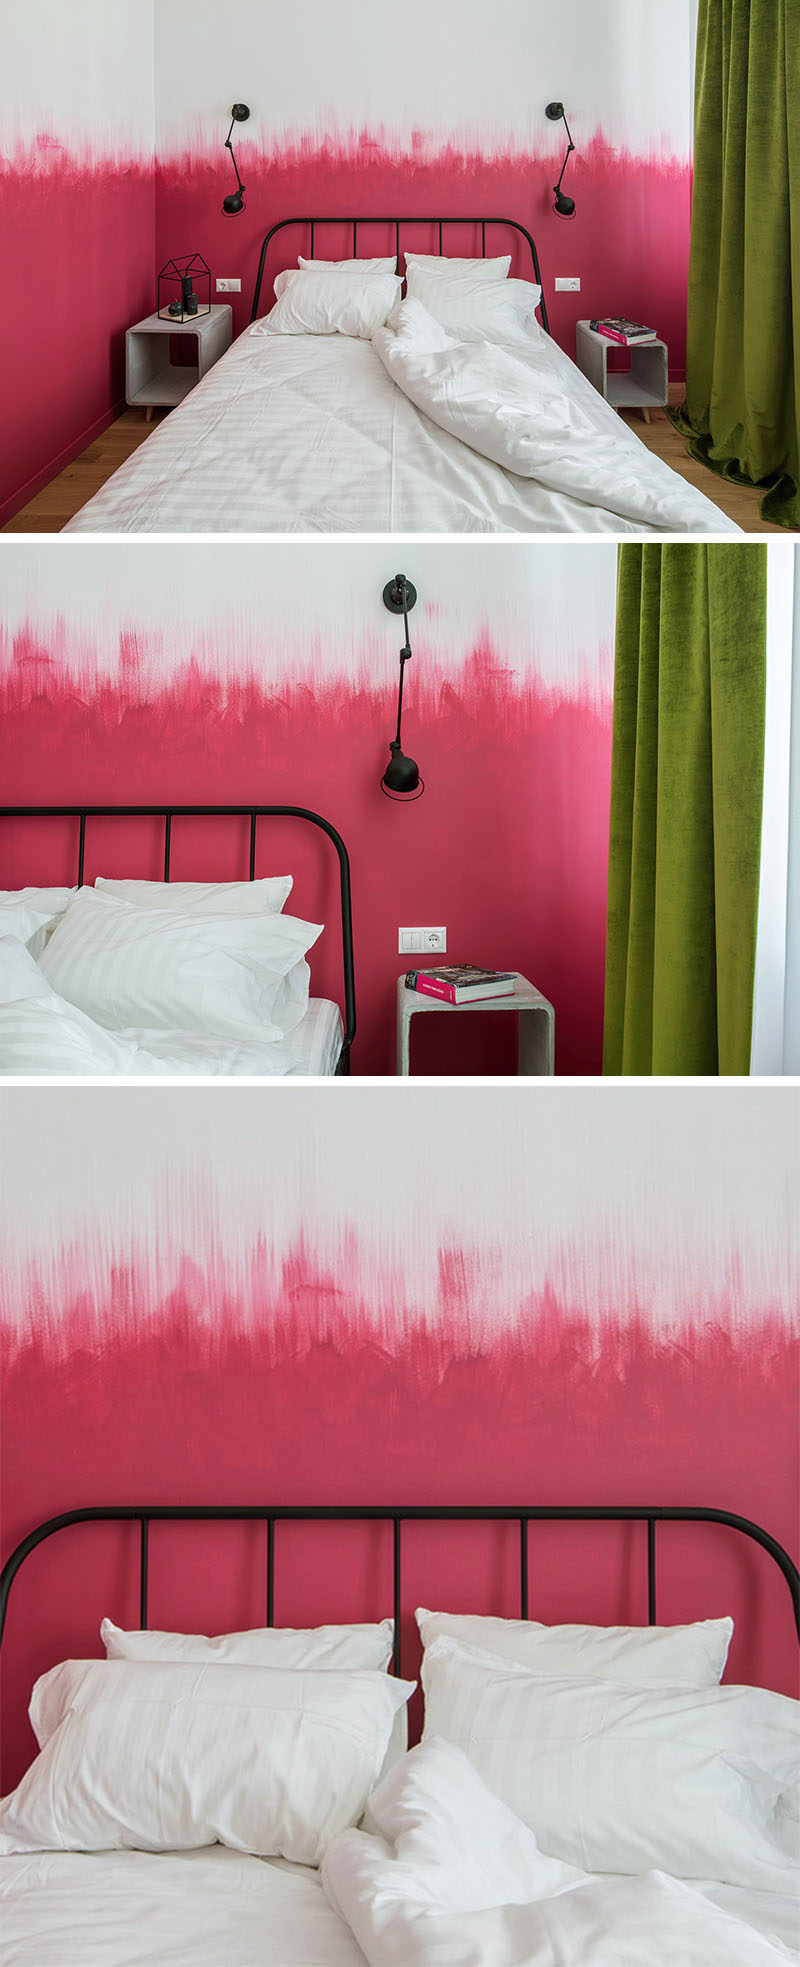 Oksana Dolgopiatova has designed a modern bedroom that features pink and white walls. While the lower part of the wall is solid pink, the top part of the pink blends into the white wall with visible vertical brush strokes creating an ombre effect.